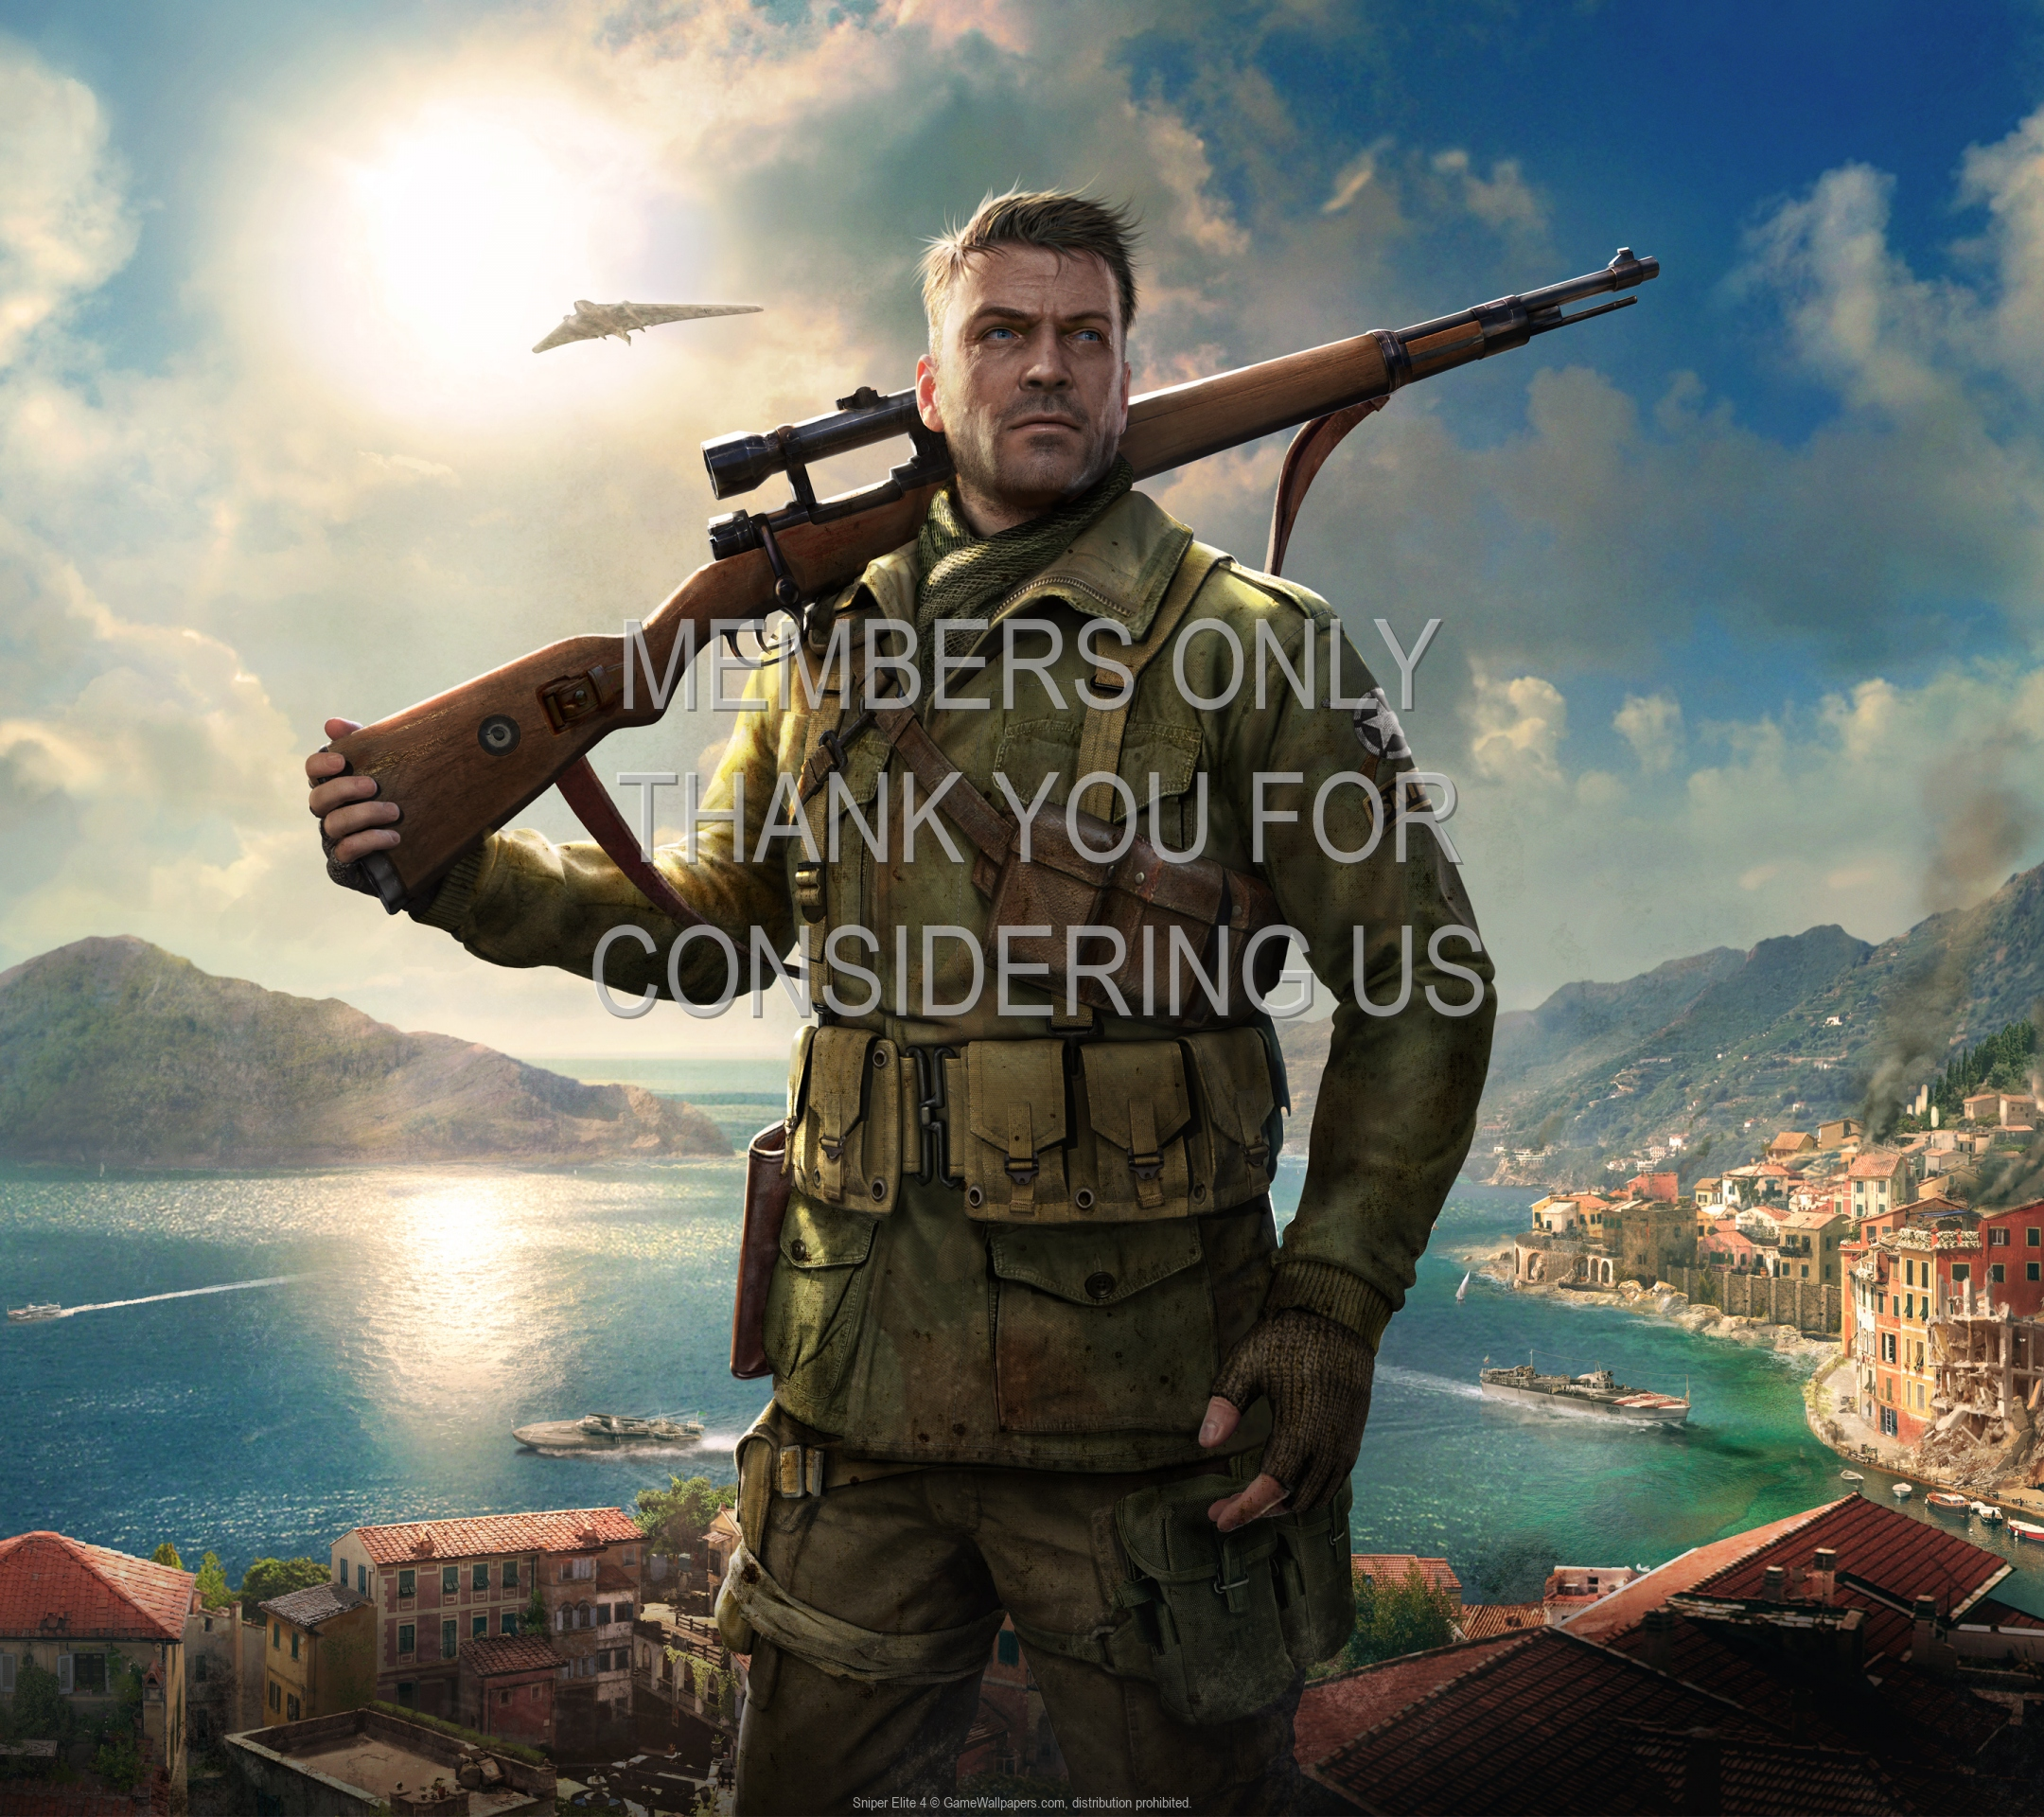 Sniper Elite 4 1920x1080 Mobile wallpaper or background 01